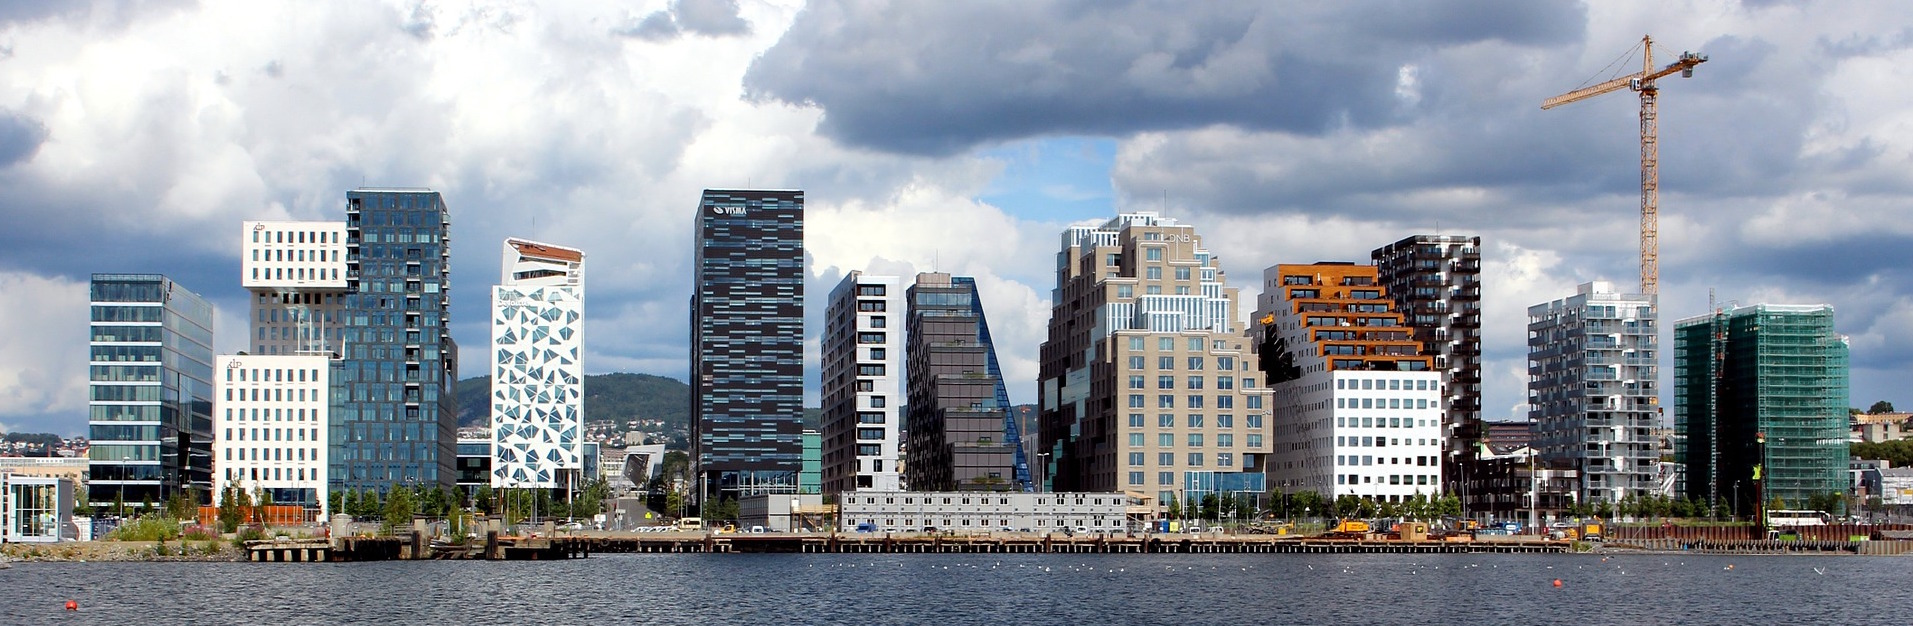 Oslo, Norway skyline with tower blocks on the water front